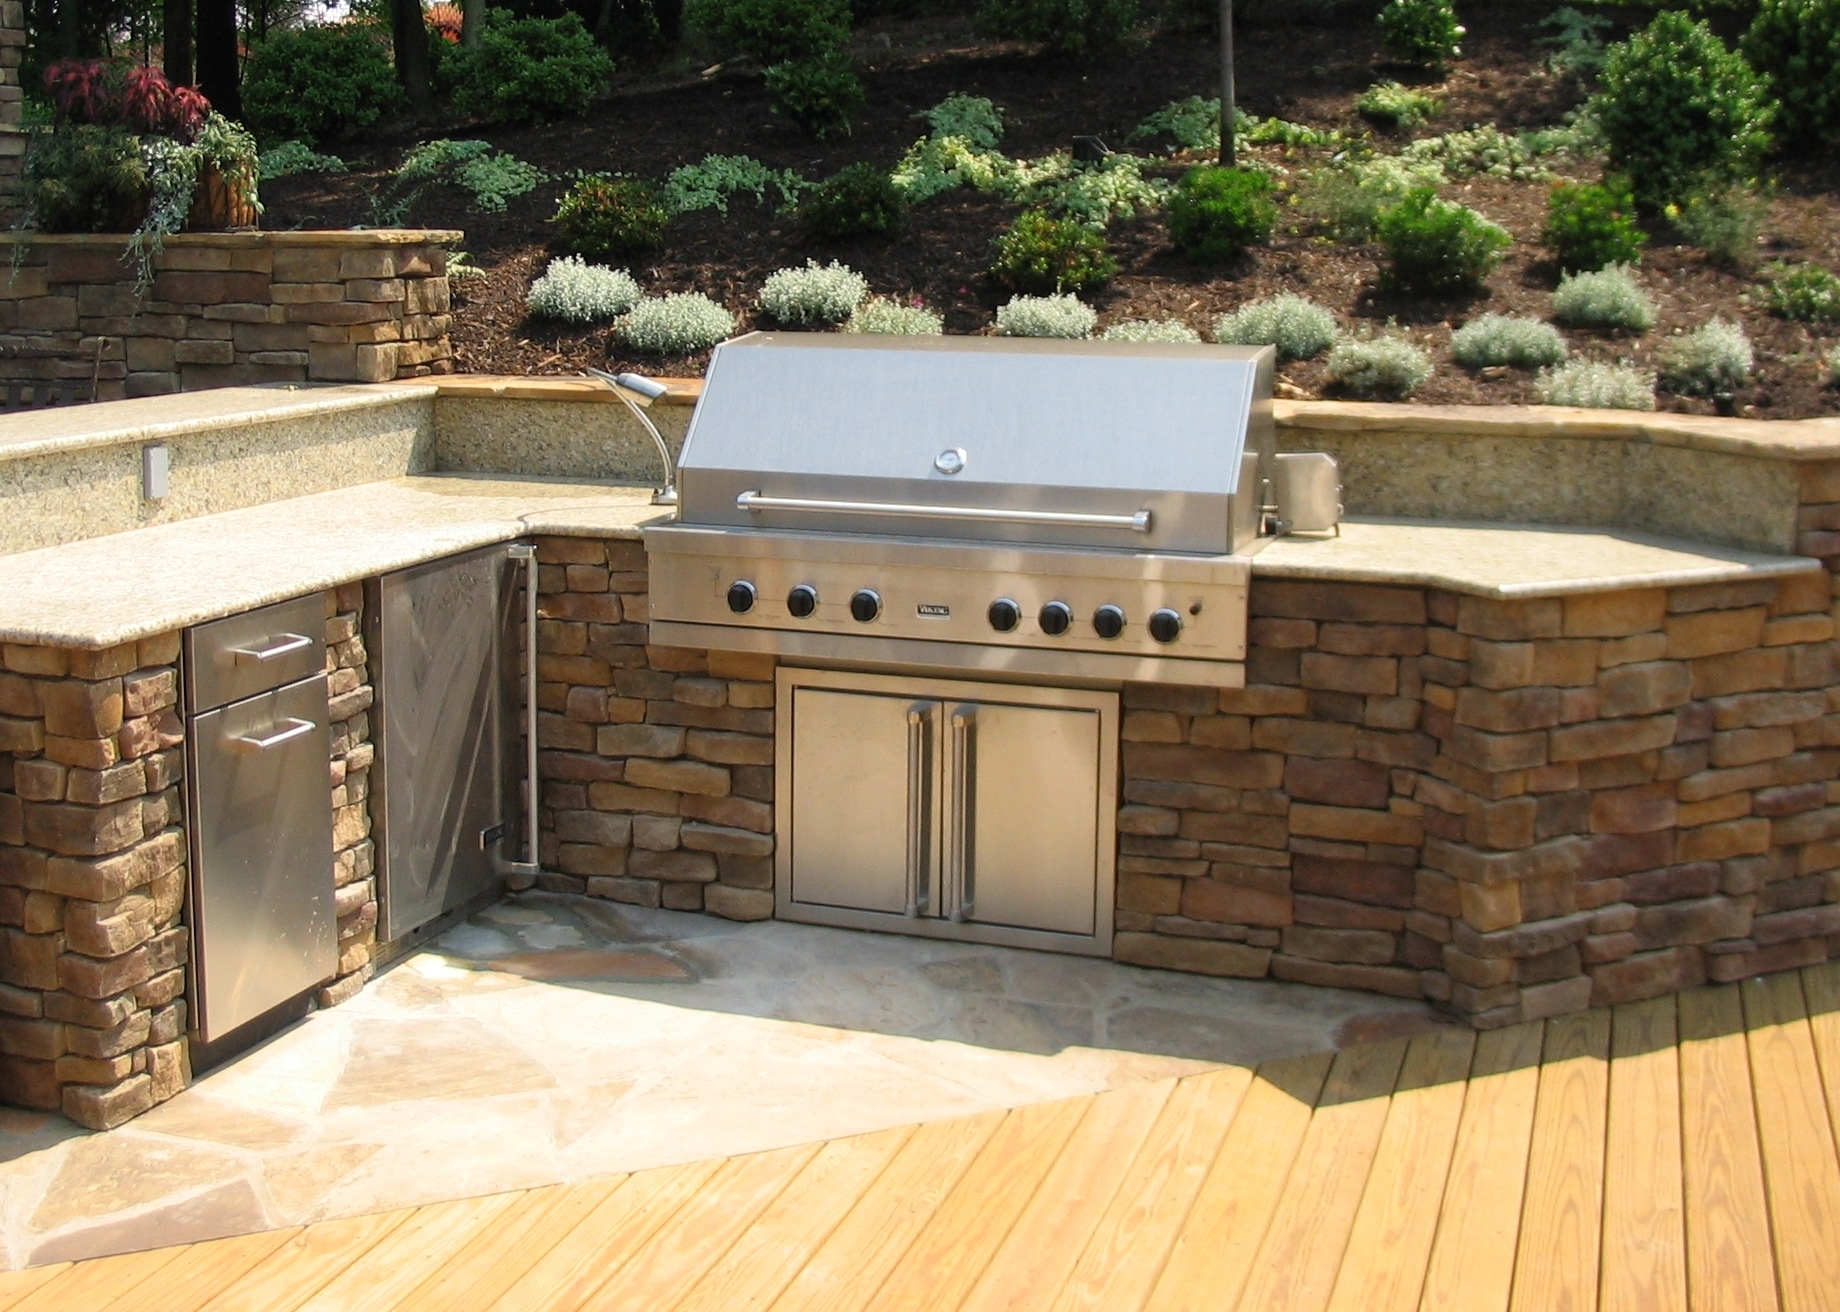 Image of: Outdoor Kitchen Sinks Ideas Zitzatcom Kitchen Colletion Modern Intended For Outdoor Kitchen Sink Drain Best Outdoor Kitchen Sink Drain Idea